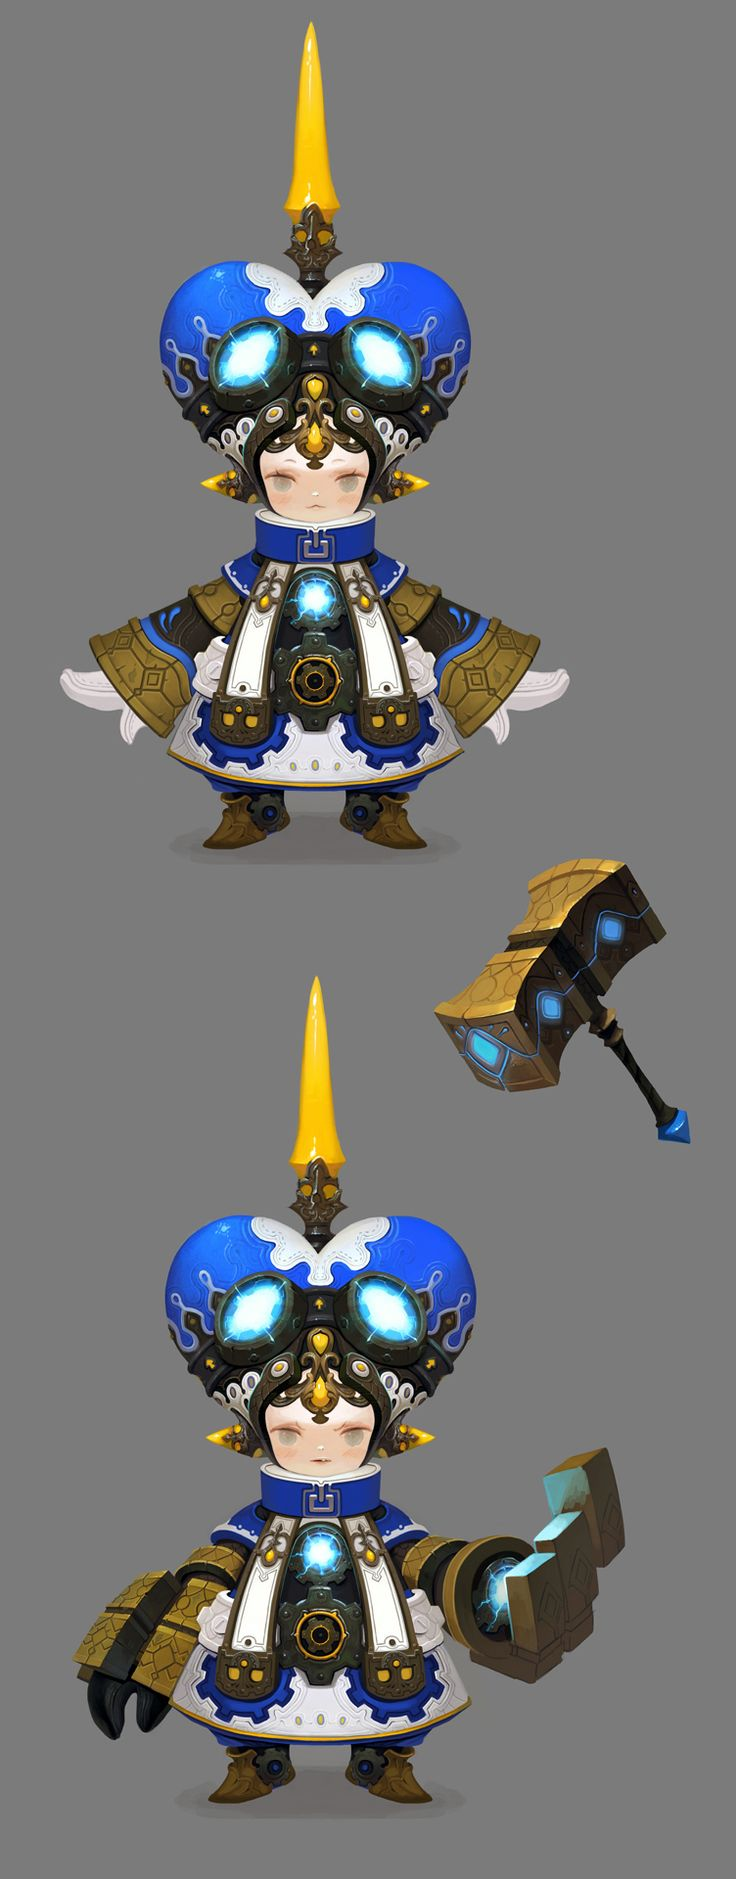 Like this Character design